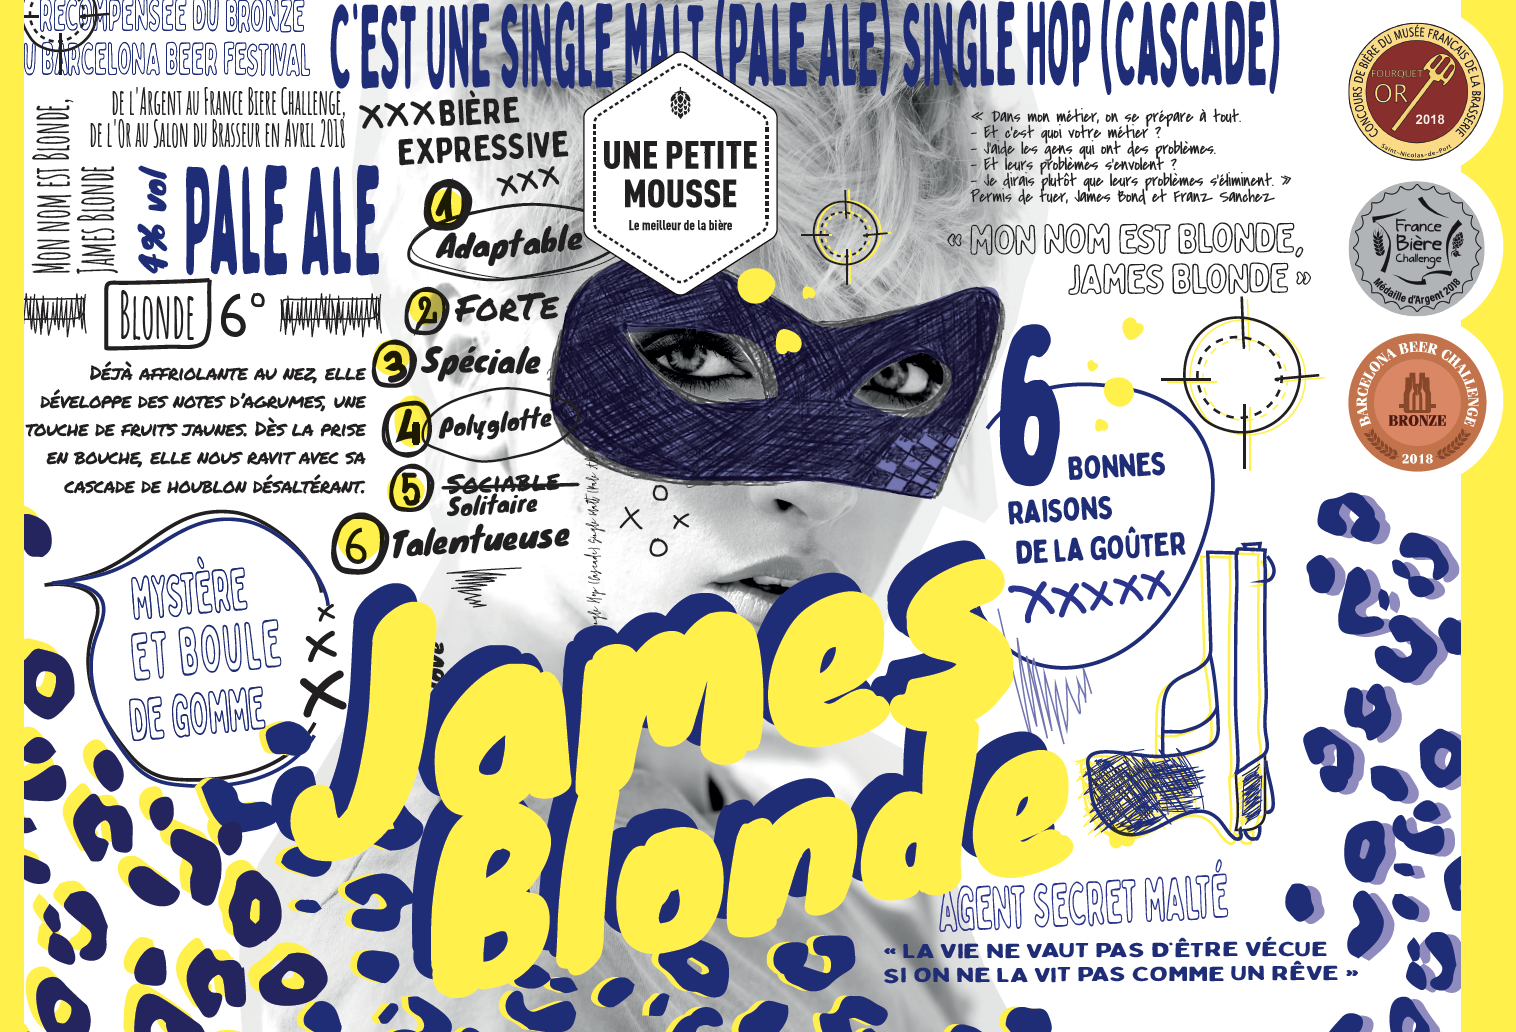 l'étiquette de la James Blonde